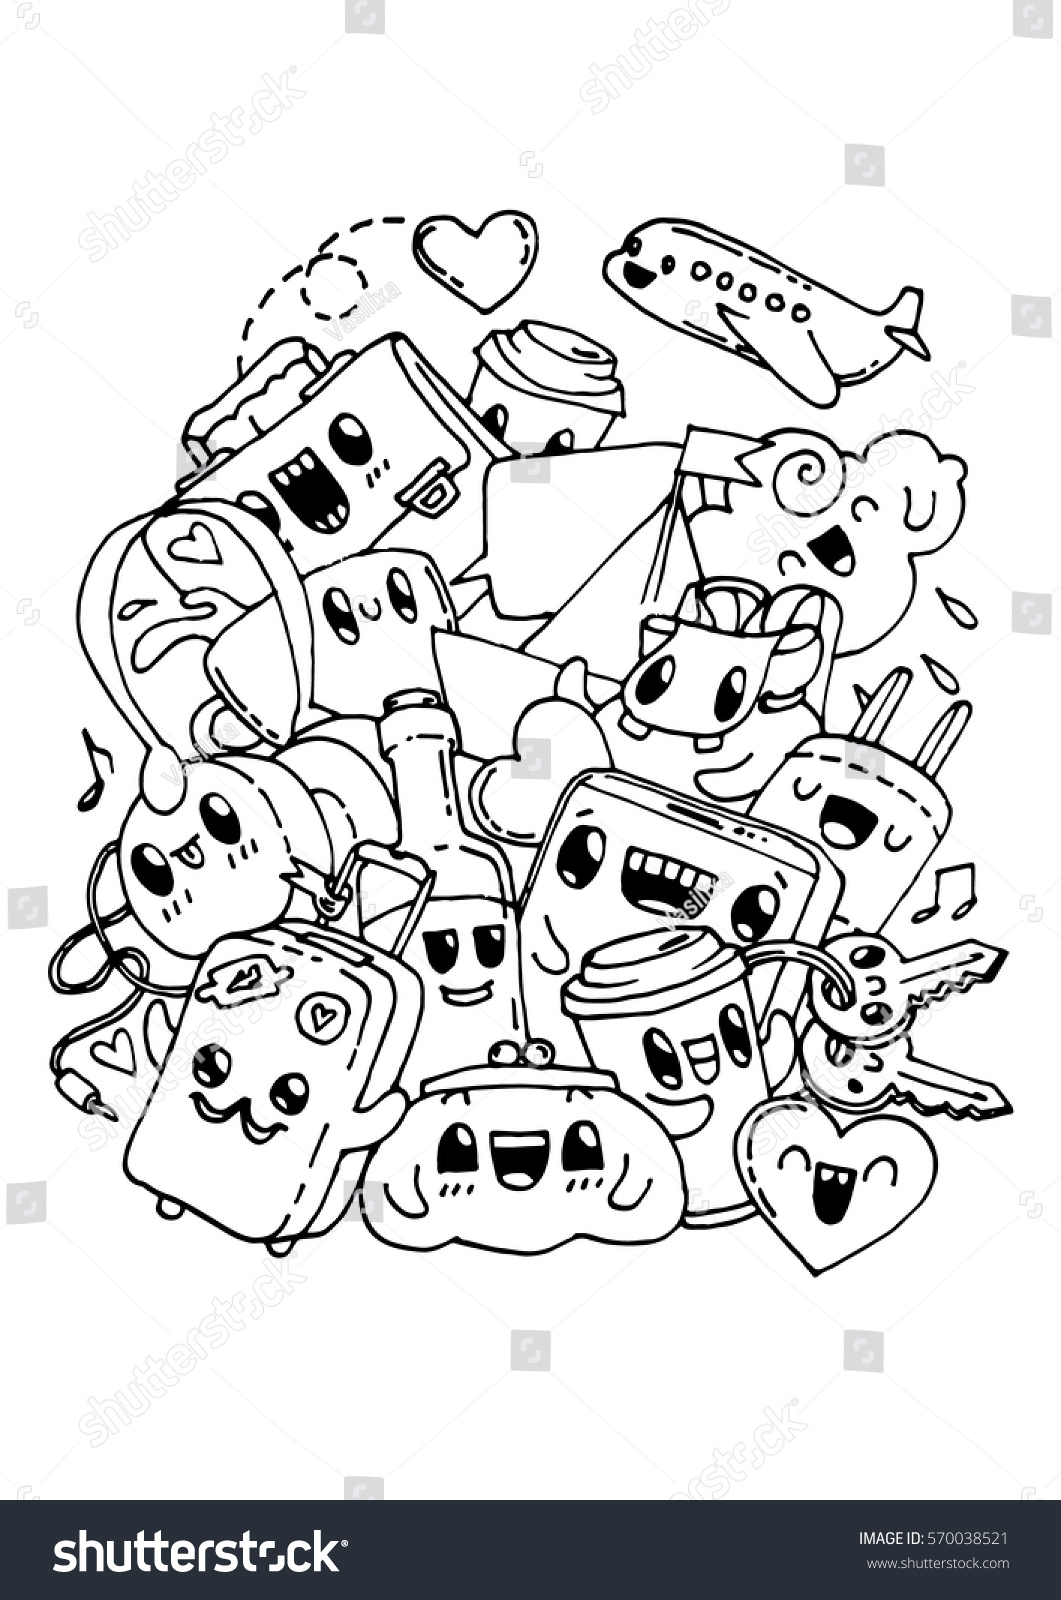 Travel Doodles Coloring Pages Kids Adult Stock Vector (Royalty Free ...